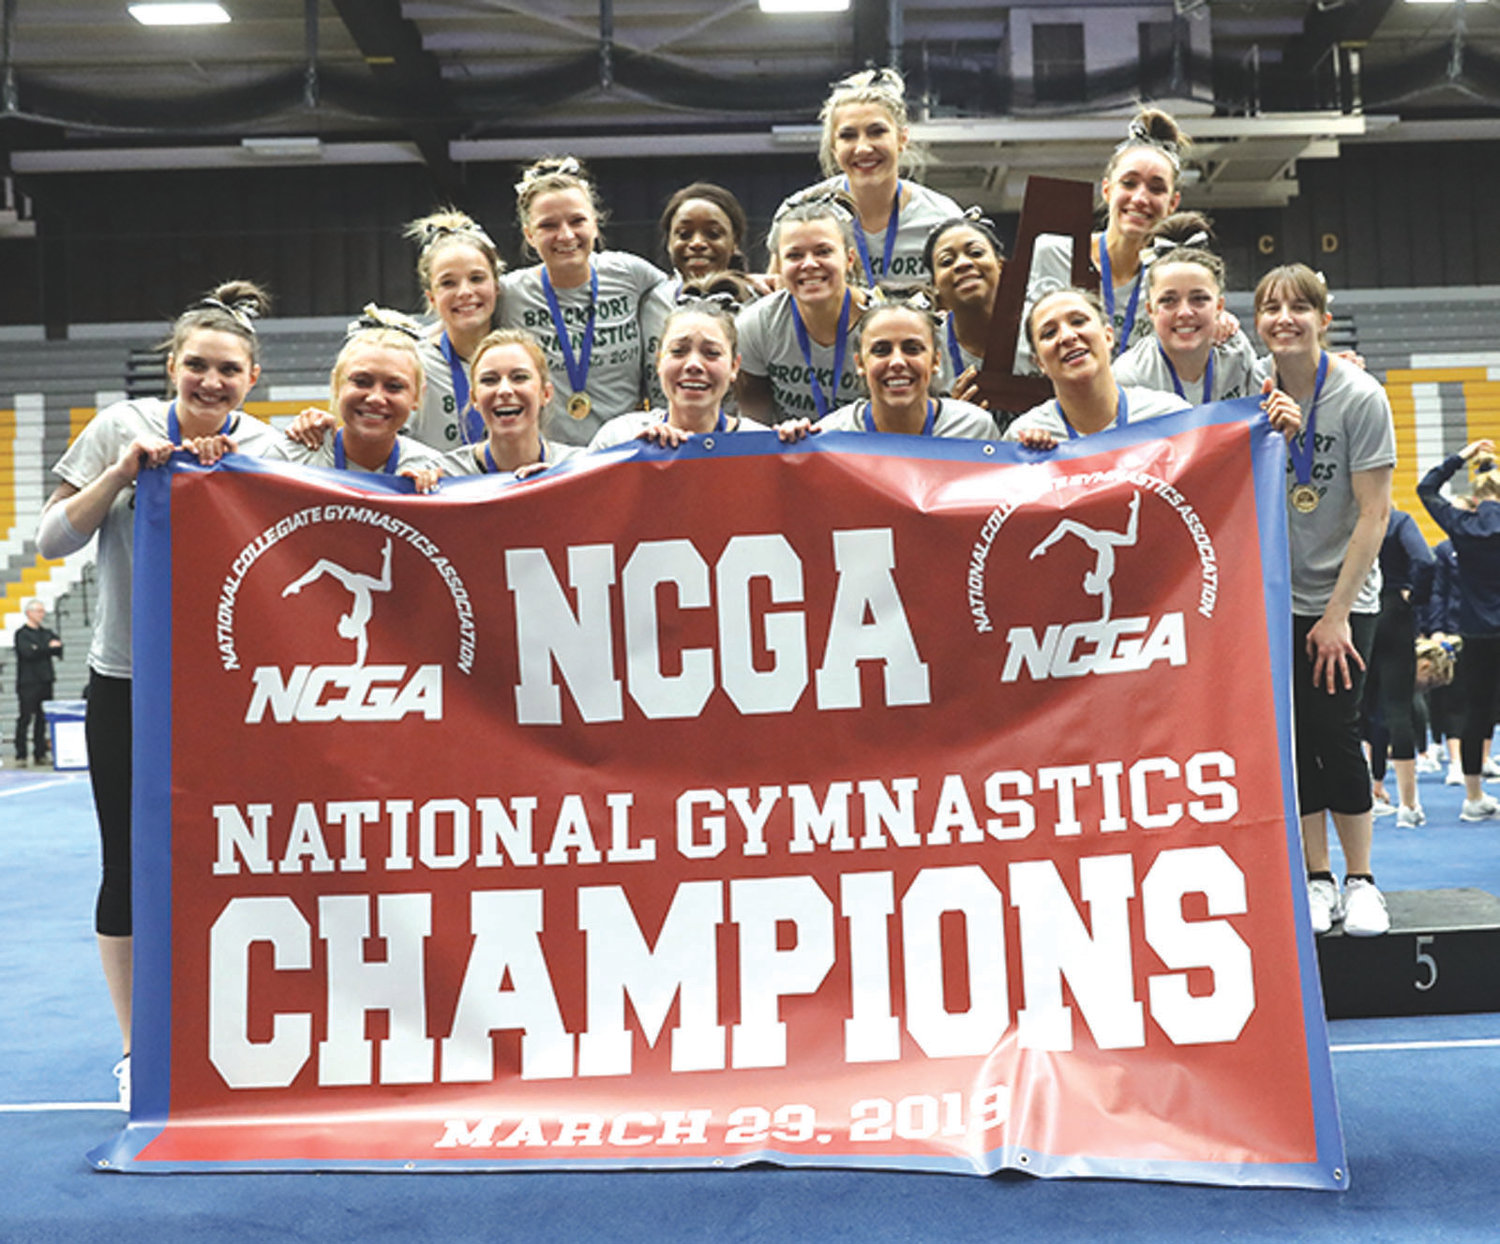 CHAMPS: The College at Brockport gymnastics team.